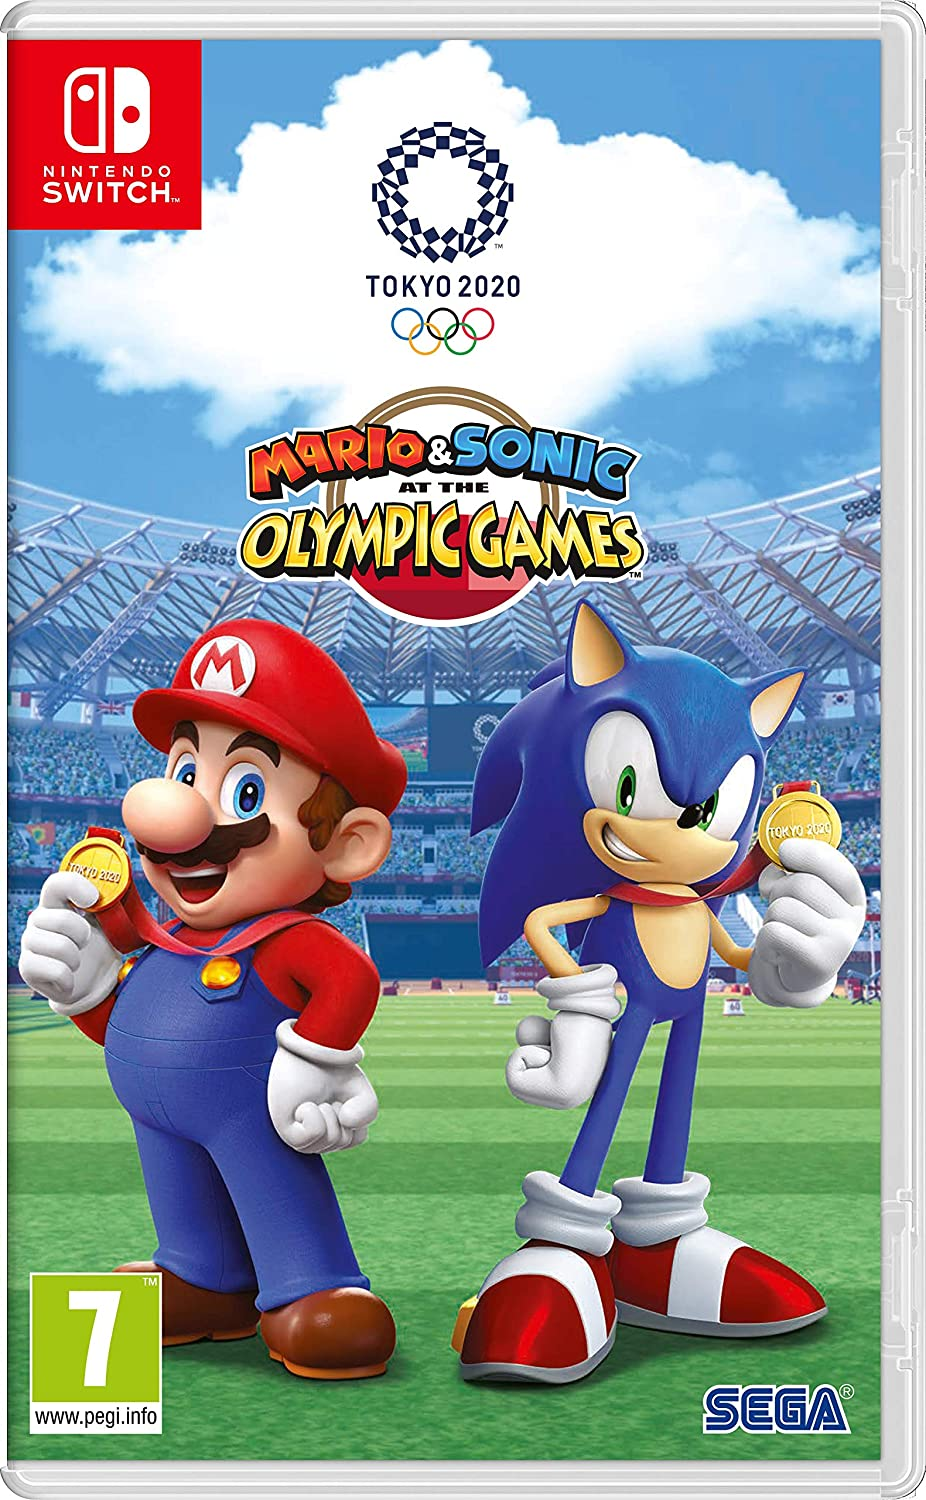 Mario And Sonic At The Olympic Games 2020.Mario And Sonic At The Olympic Games Tokyo 2020 Amazon Co